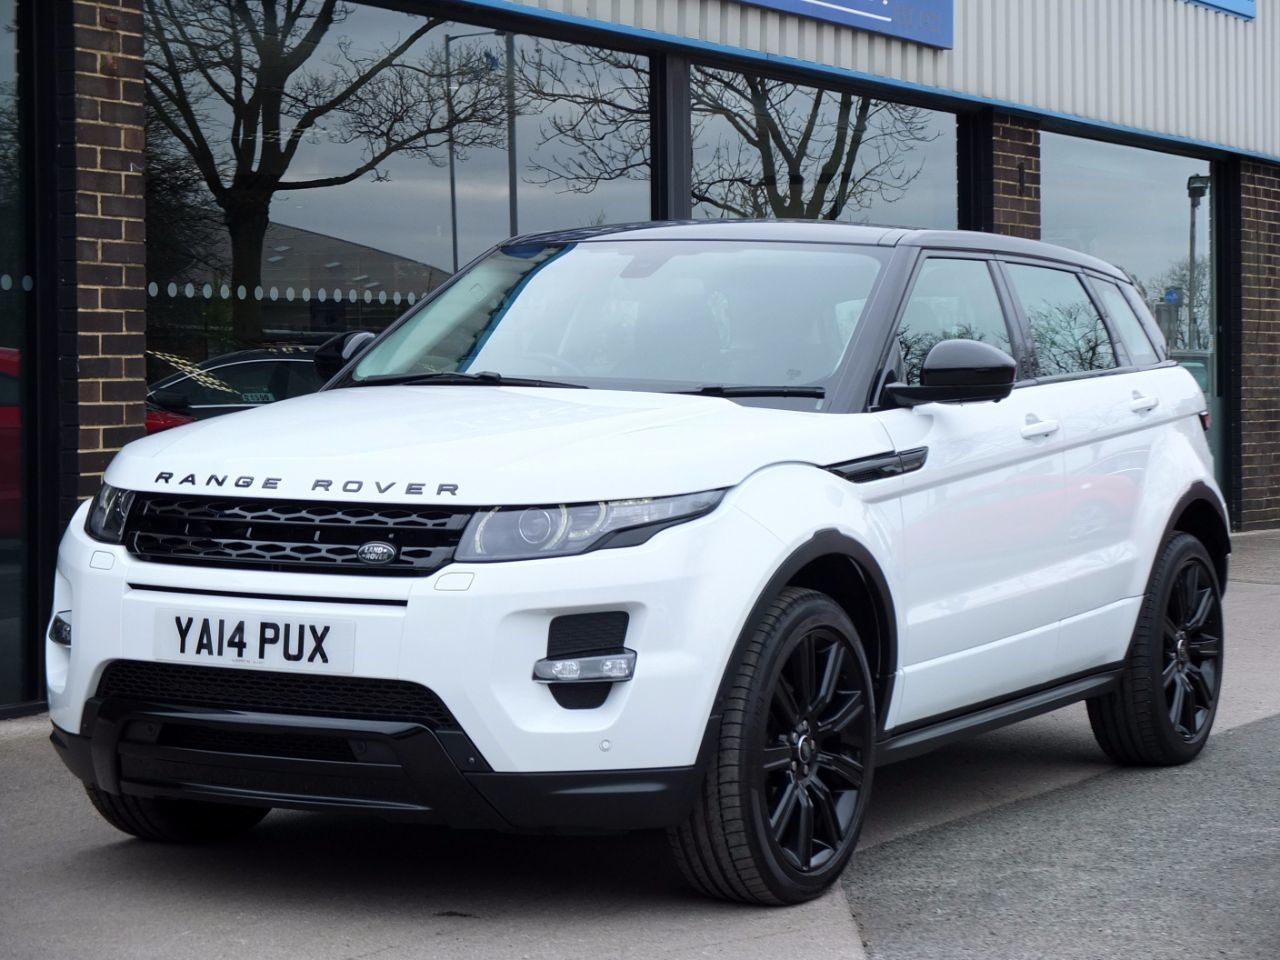 Land Rover Range Rover Evoque 2.2 SD4 Dynamic 5 door Auto [9] LUX Pack Estate Diesel Fuji WhiteLand Rover Range Rover Evoque 2.2 SD4 Dynamic 5 door Auto [9] LUX Pack Estate Diesel Fuji White at fa Roper Ltd Bradford